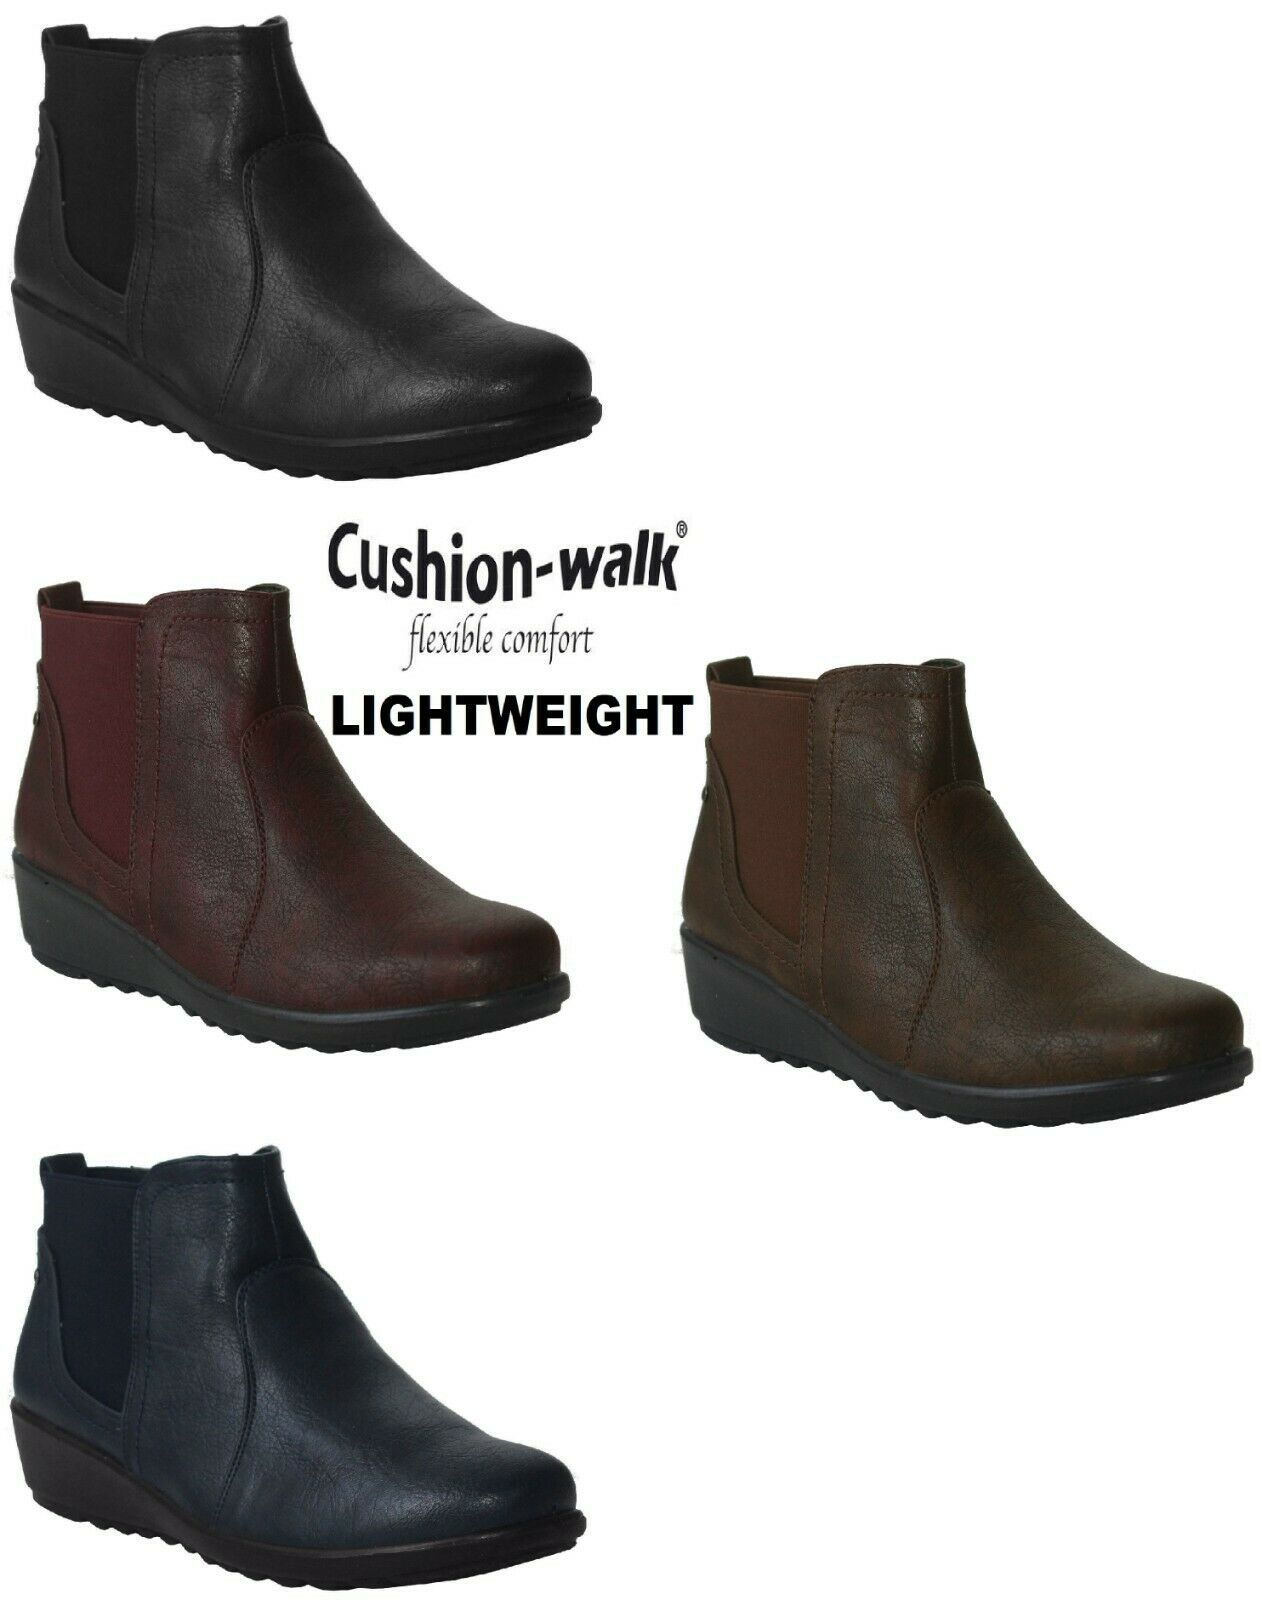 NEW WOMENS LADIES TWIN GUSSET LIGHTWEIGHT LOW WEDGE HEEL CASUAL WALK ANKLE BOOTS